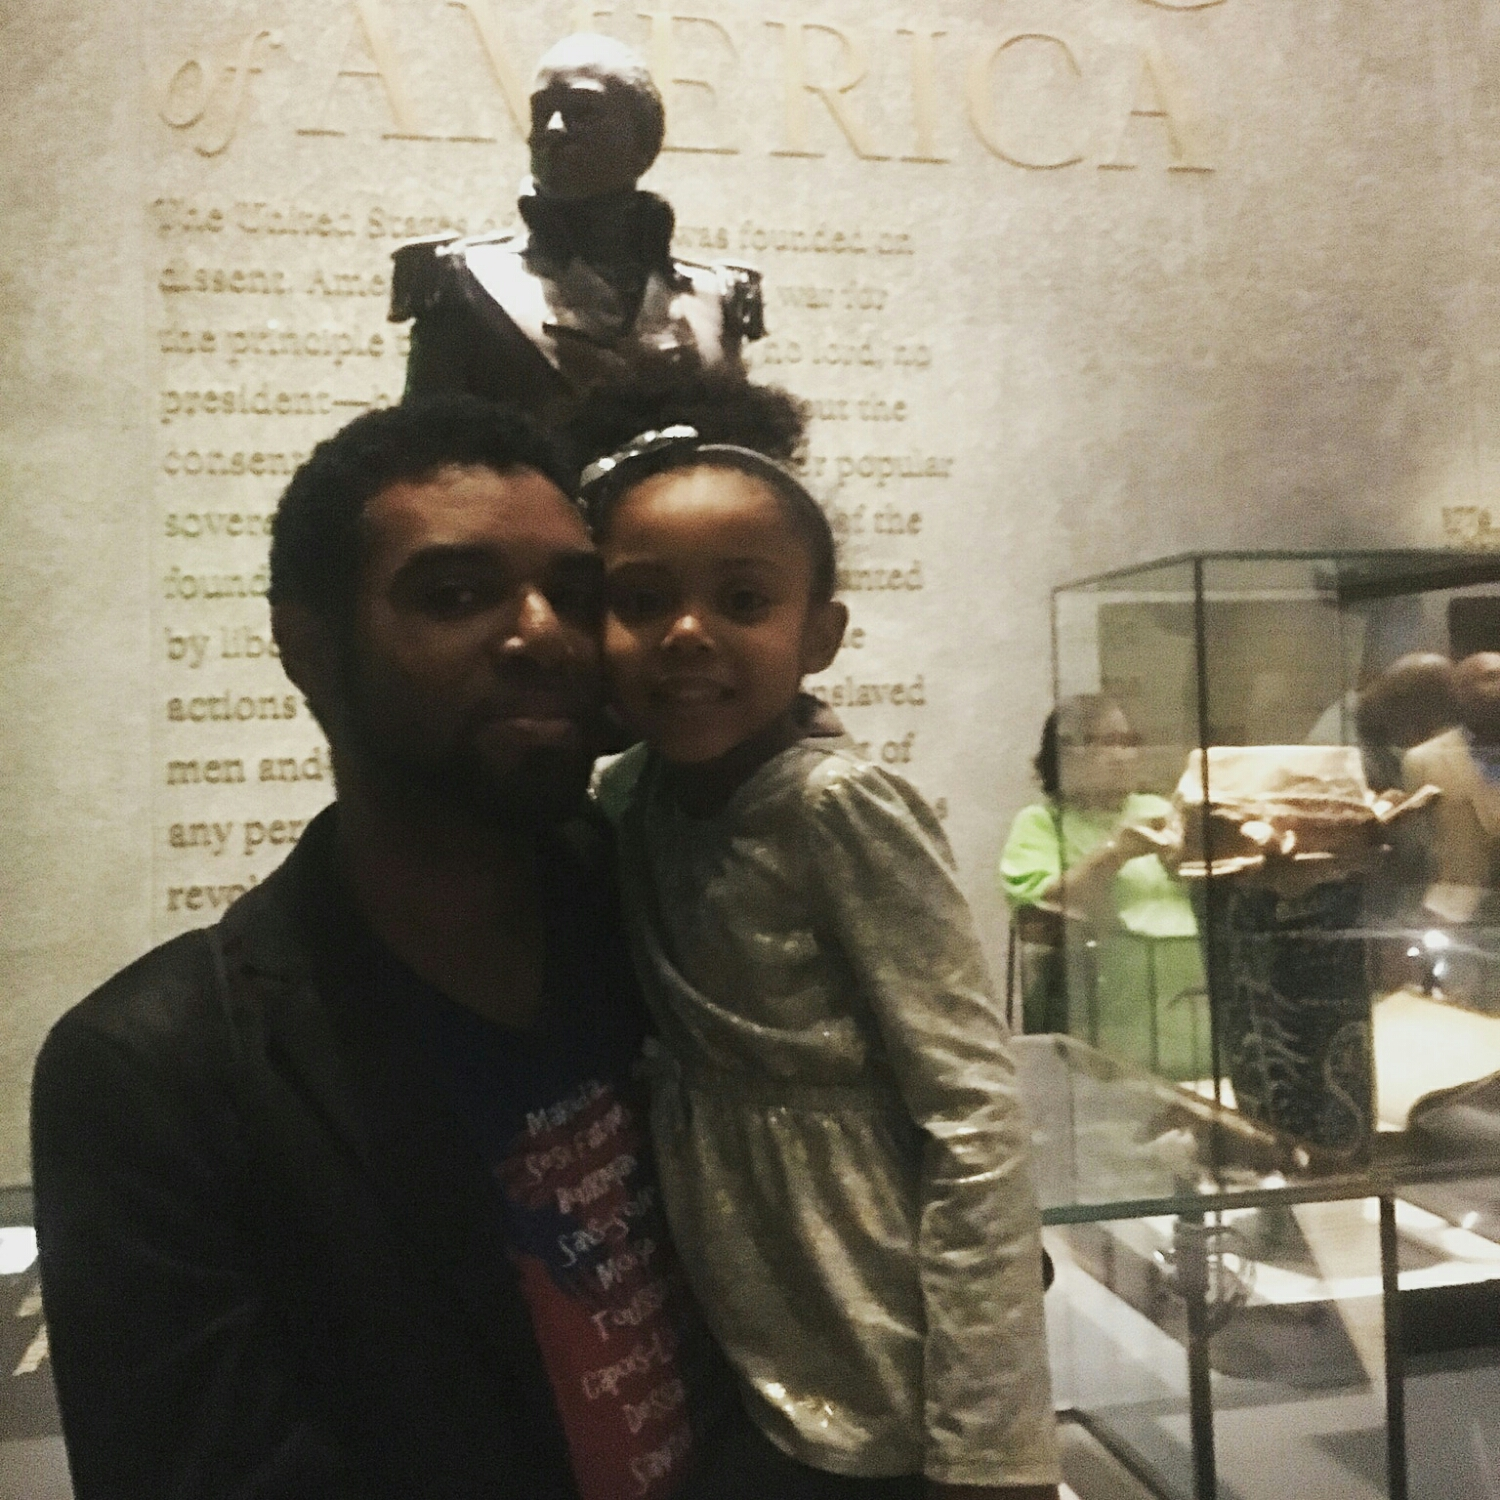 at the National Museum of African-American History and Culture (NMAAHC) with a statue of Toussaint L'Ouverture behind us